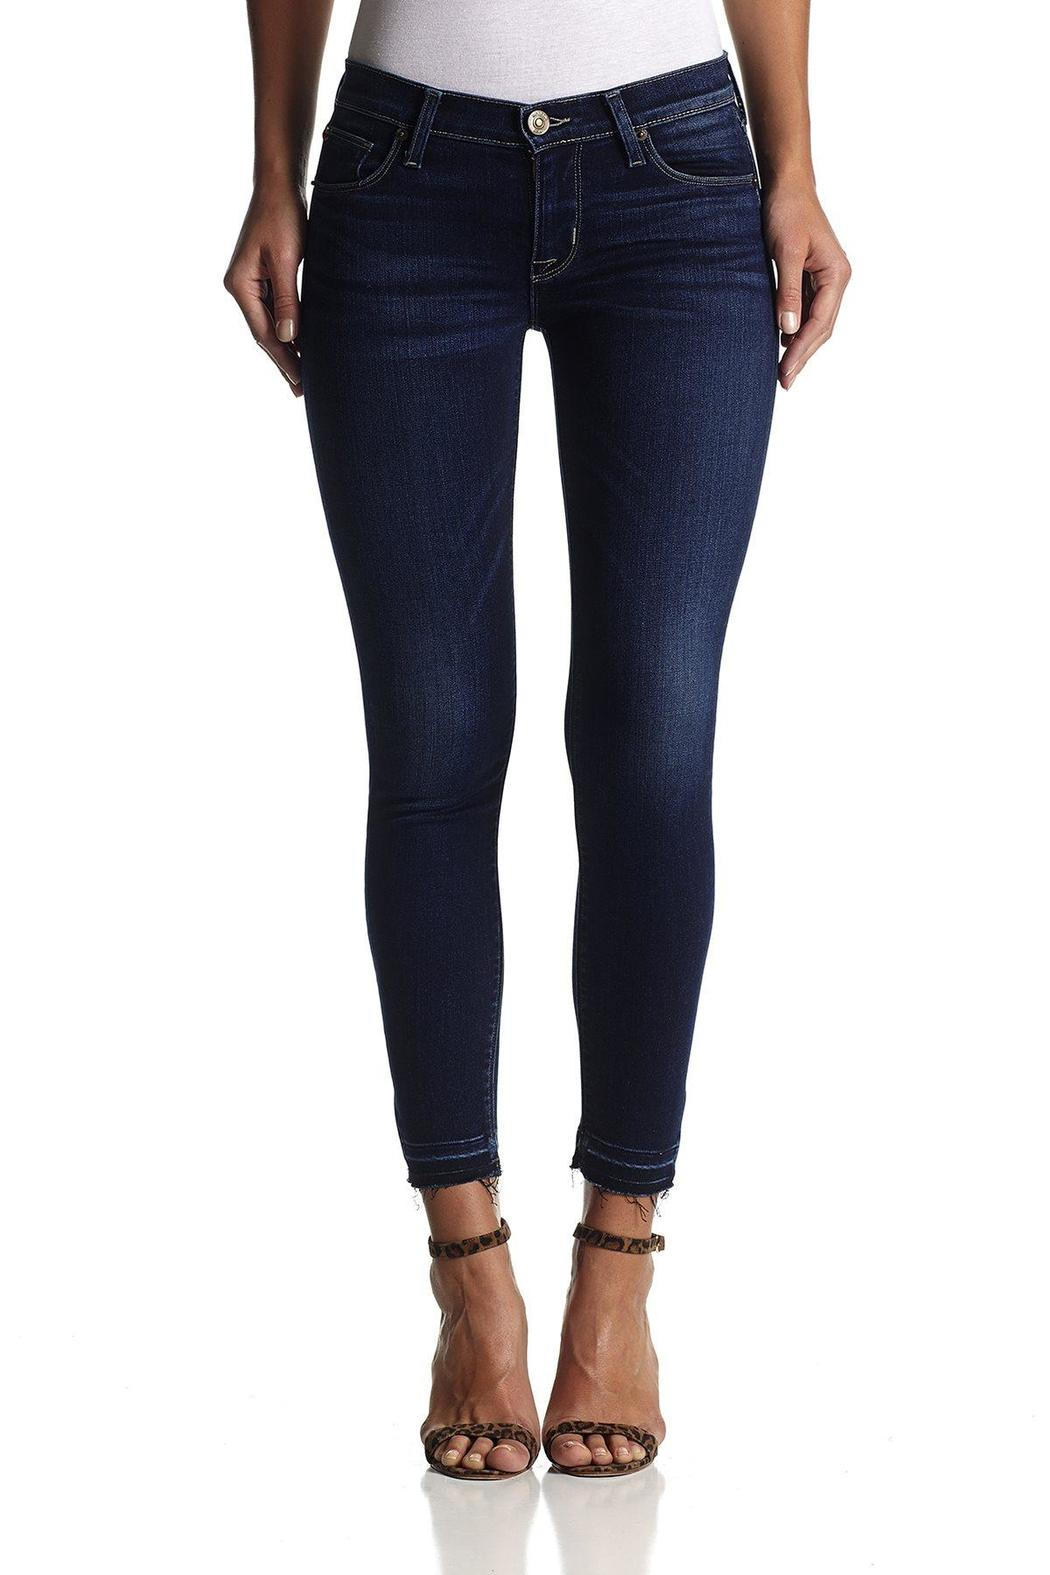 34ea9ca0e52 Hudson Jeans Krista Crop Skinny from Texas by Red Swagger — Shoptiques